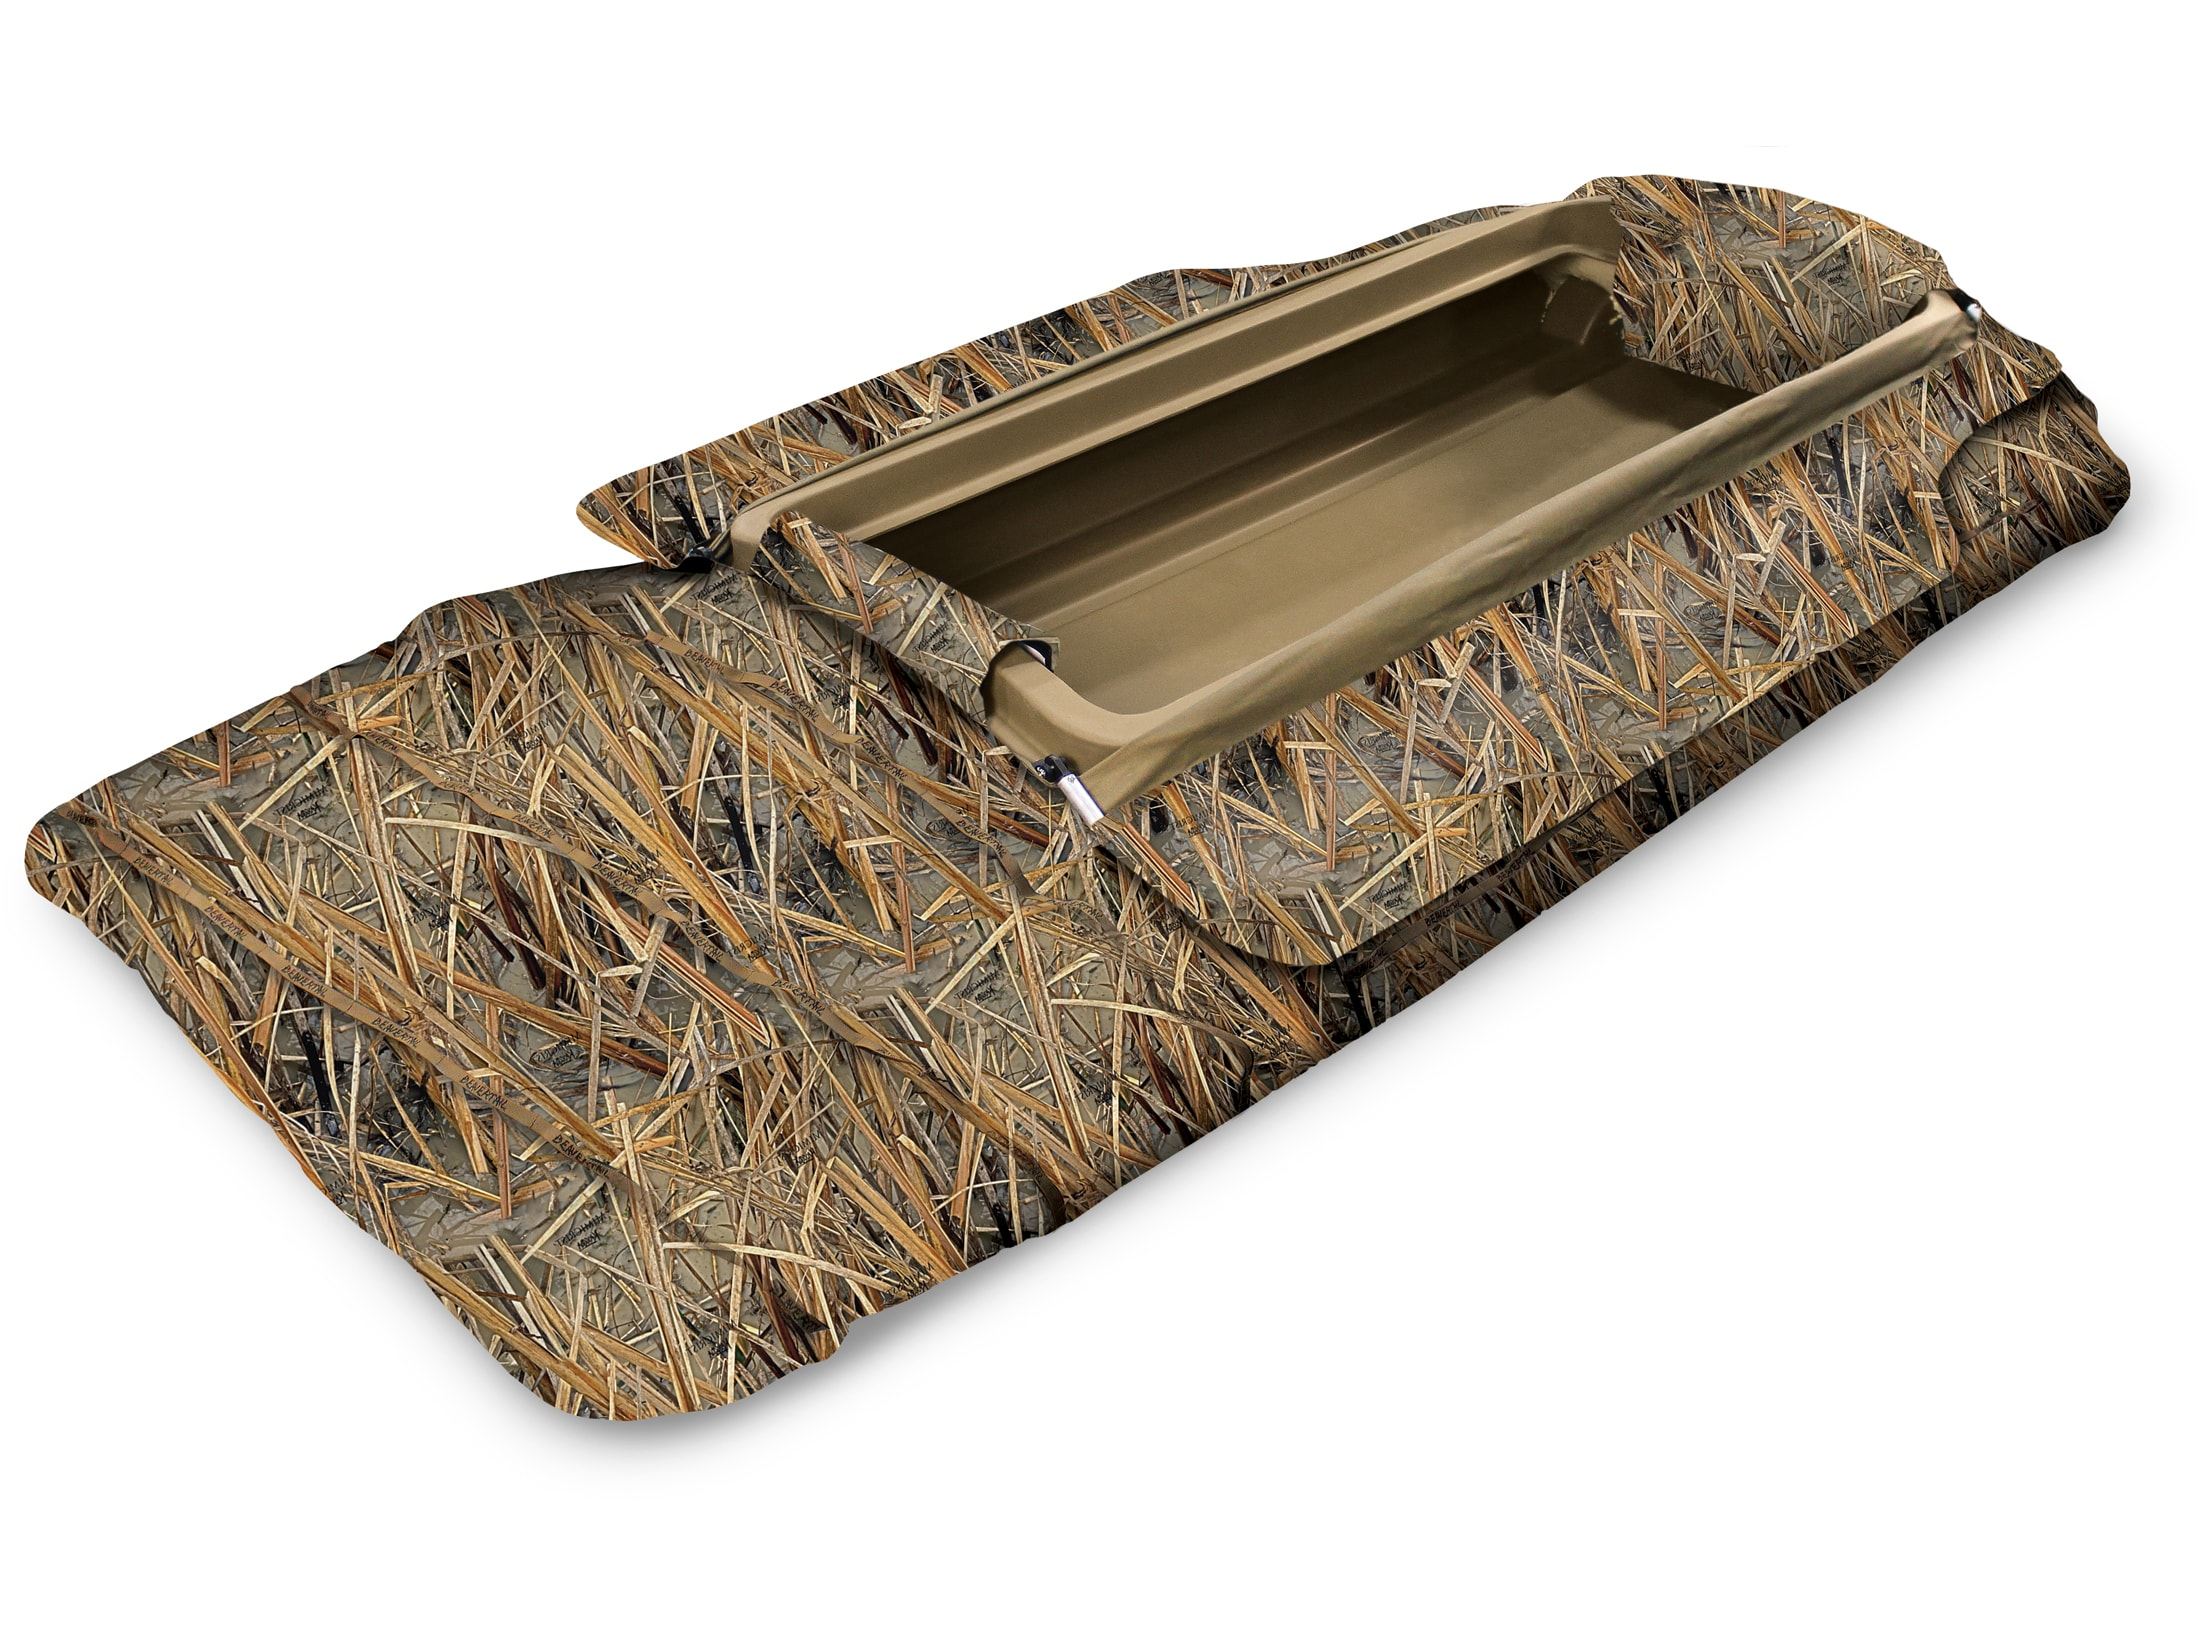 Beavertail Final Attack 8 Sneak Boat Backrest Blind